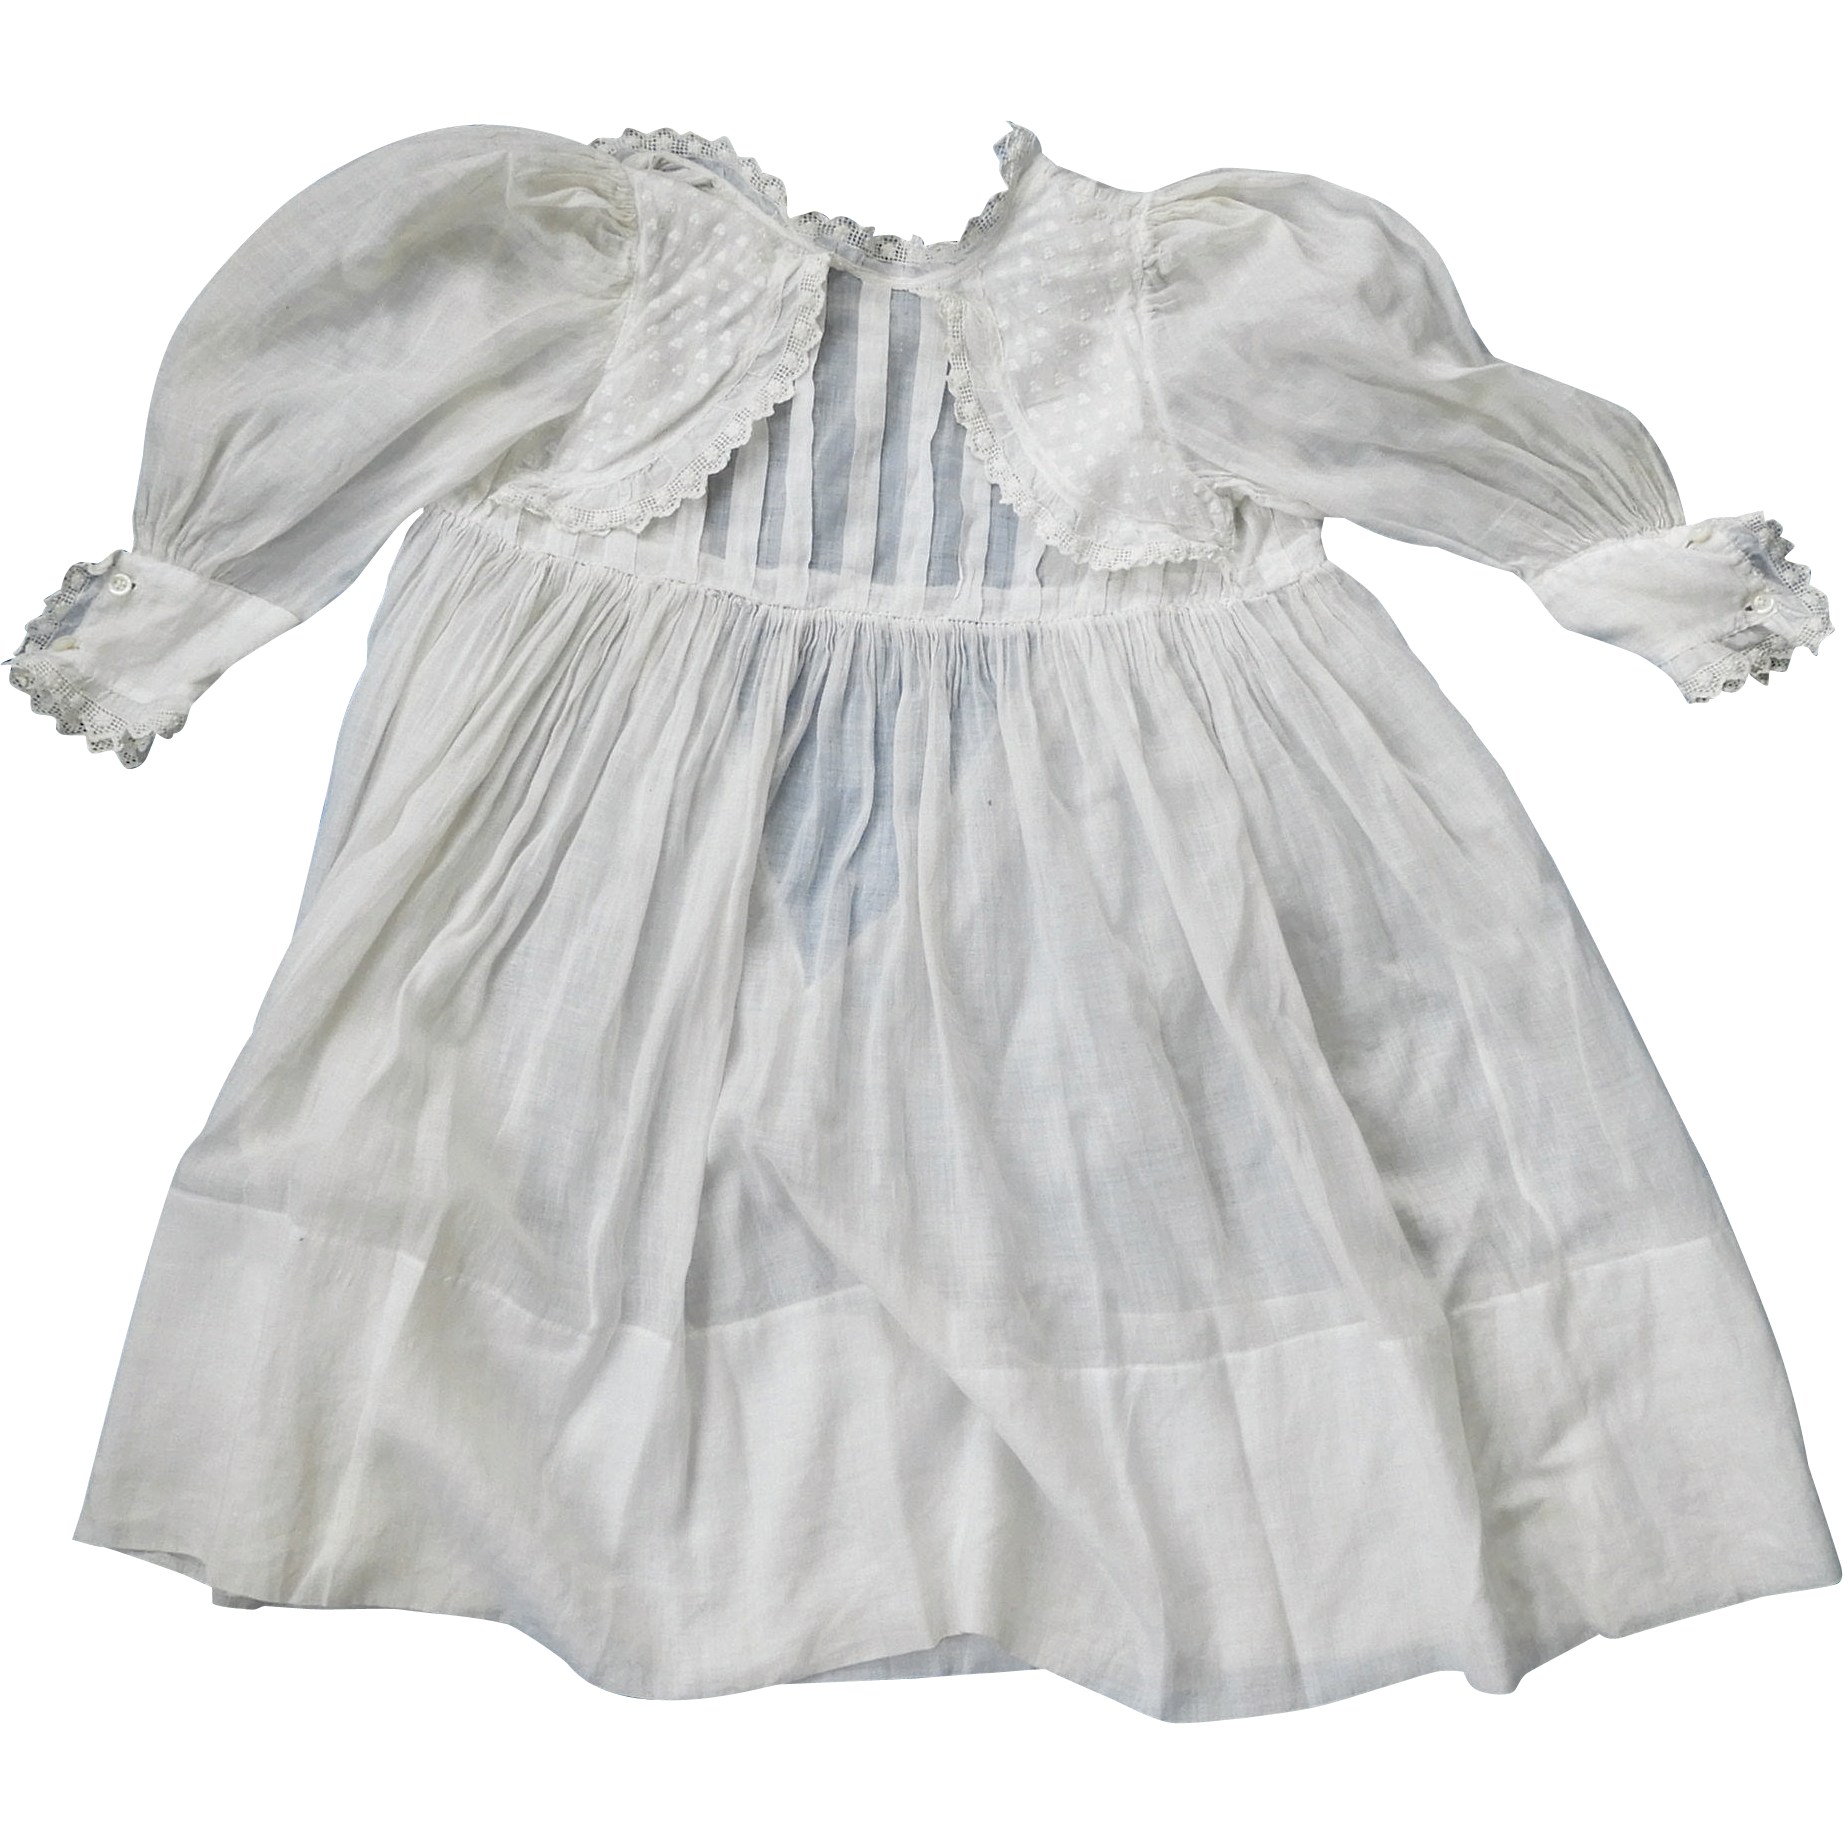 Sweet Antique Girl's or Large Bisque Doll's Dress, Pintucks & Lace